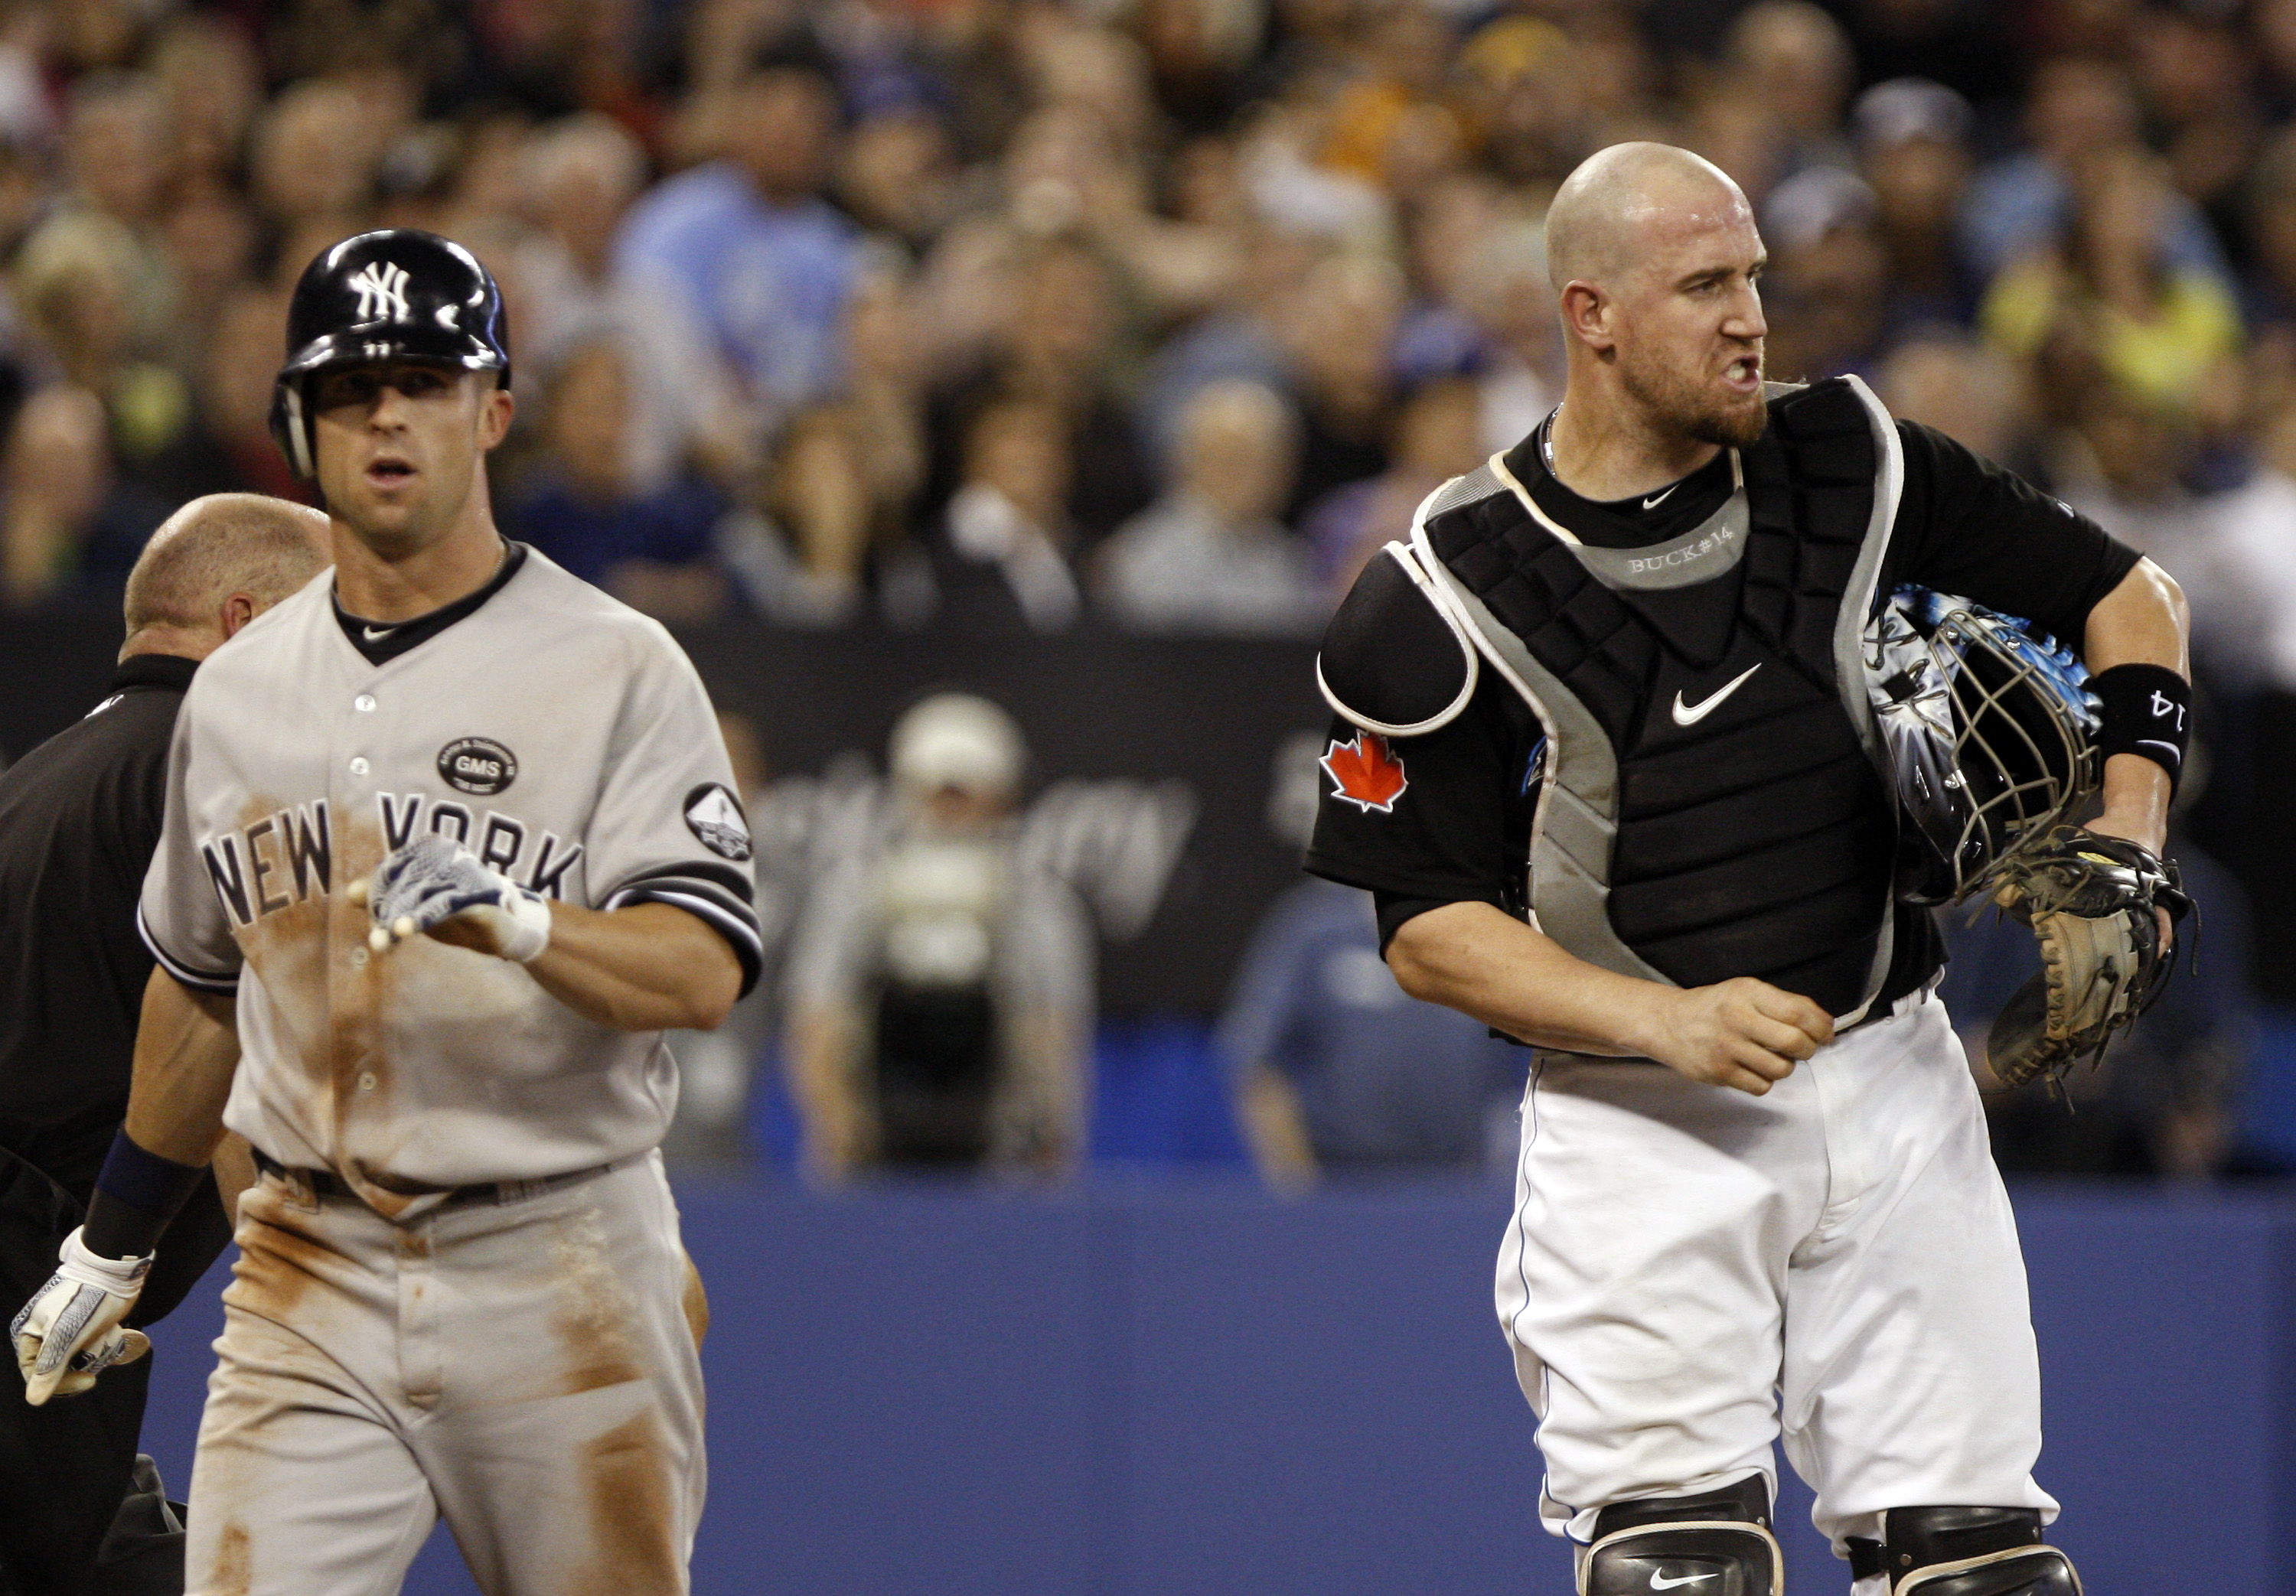 TORONTO, ON - SEPTEMBER 28: John Buck #14 of the Toronto Blue Jays reacts as Brett Gardner #11 of the New York Yankees is called safe at home during an MLB game at the Rogers Centre September 28, 2010 in Toronto, Ontario, Canada. (Photo by Abelimages/Gett